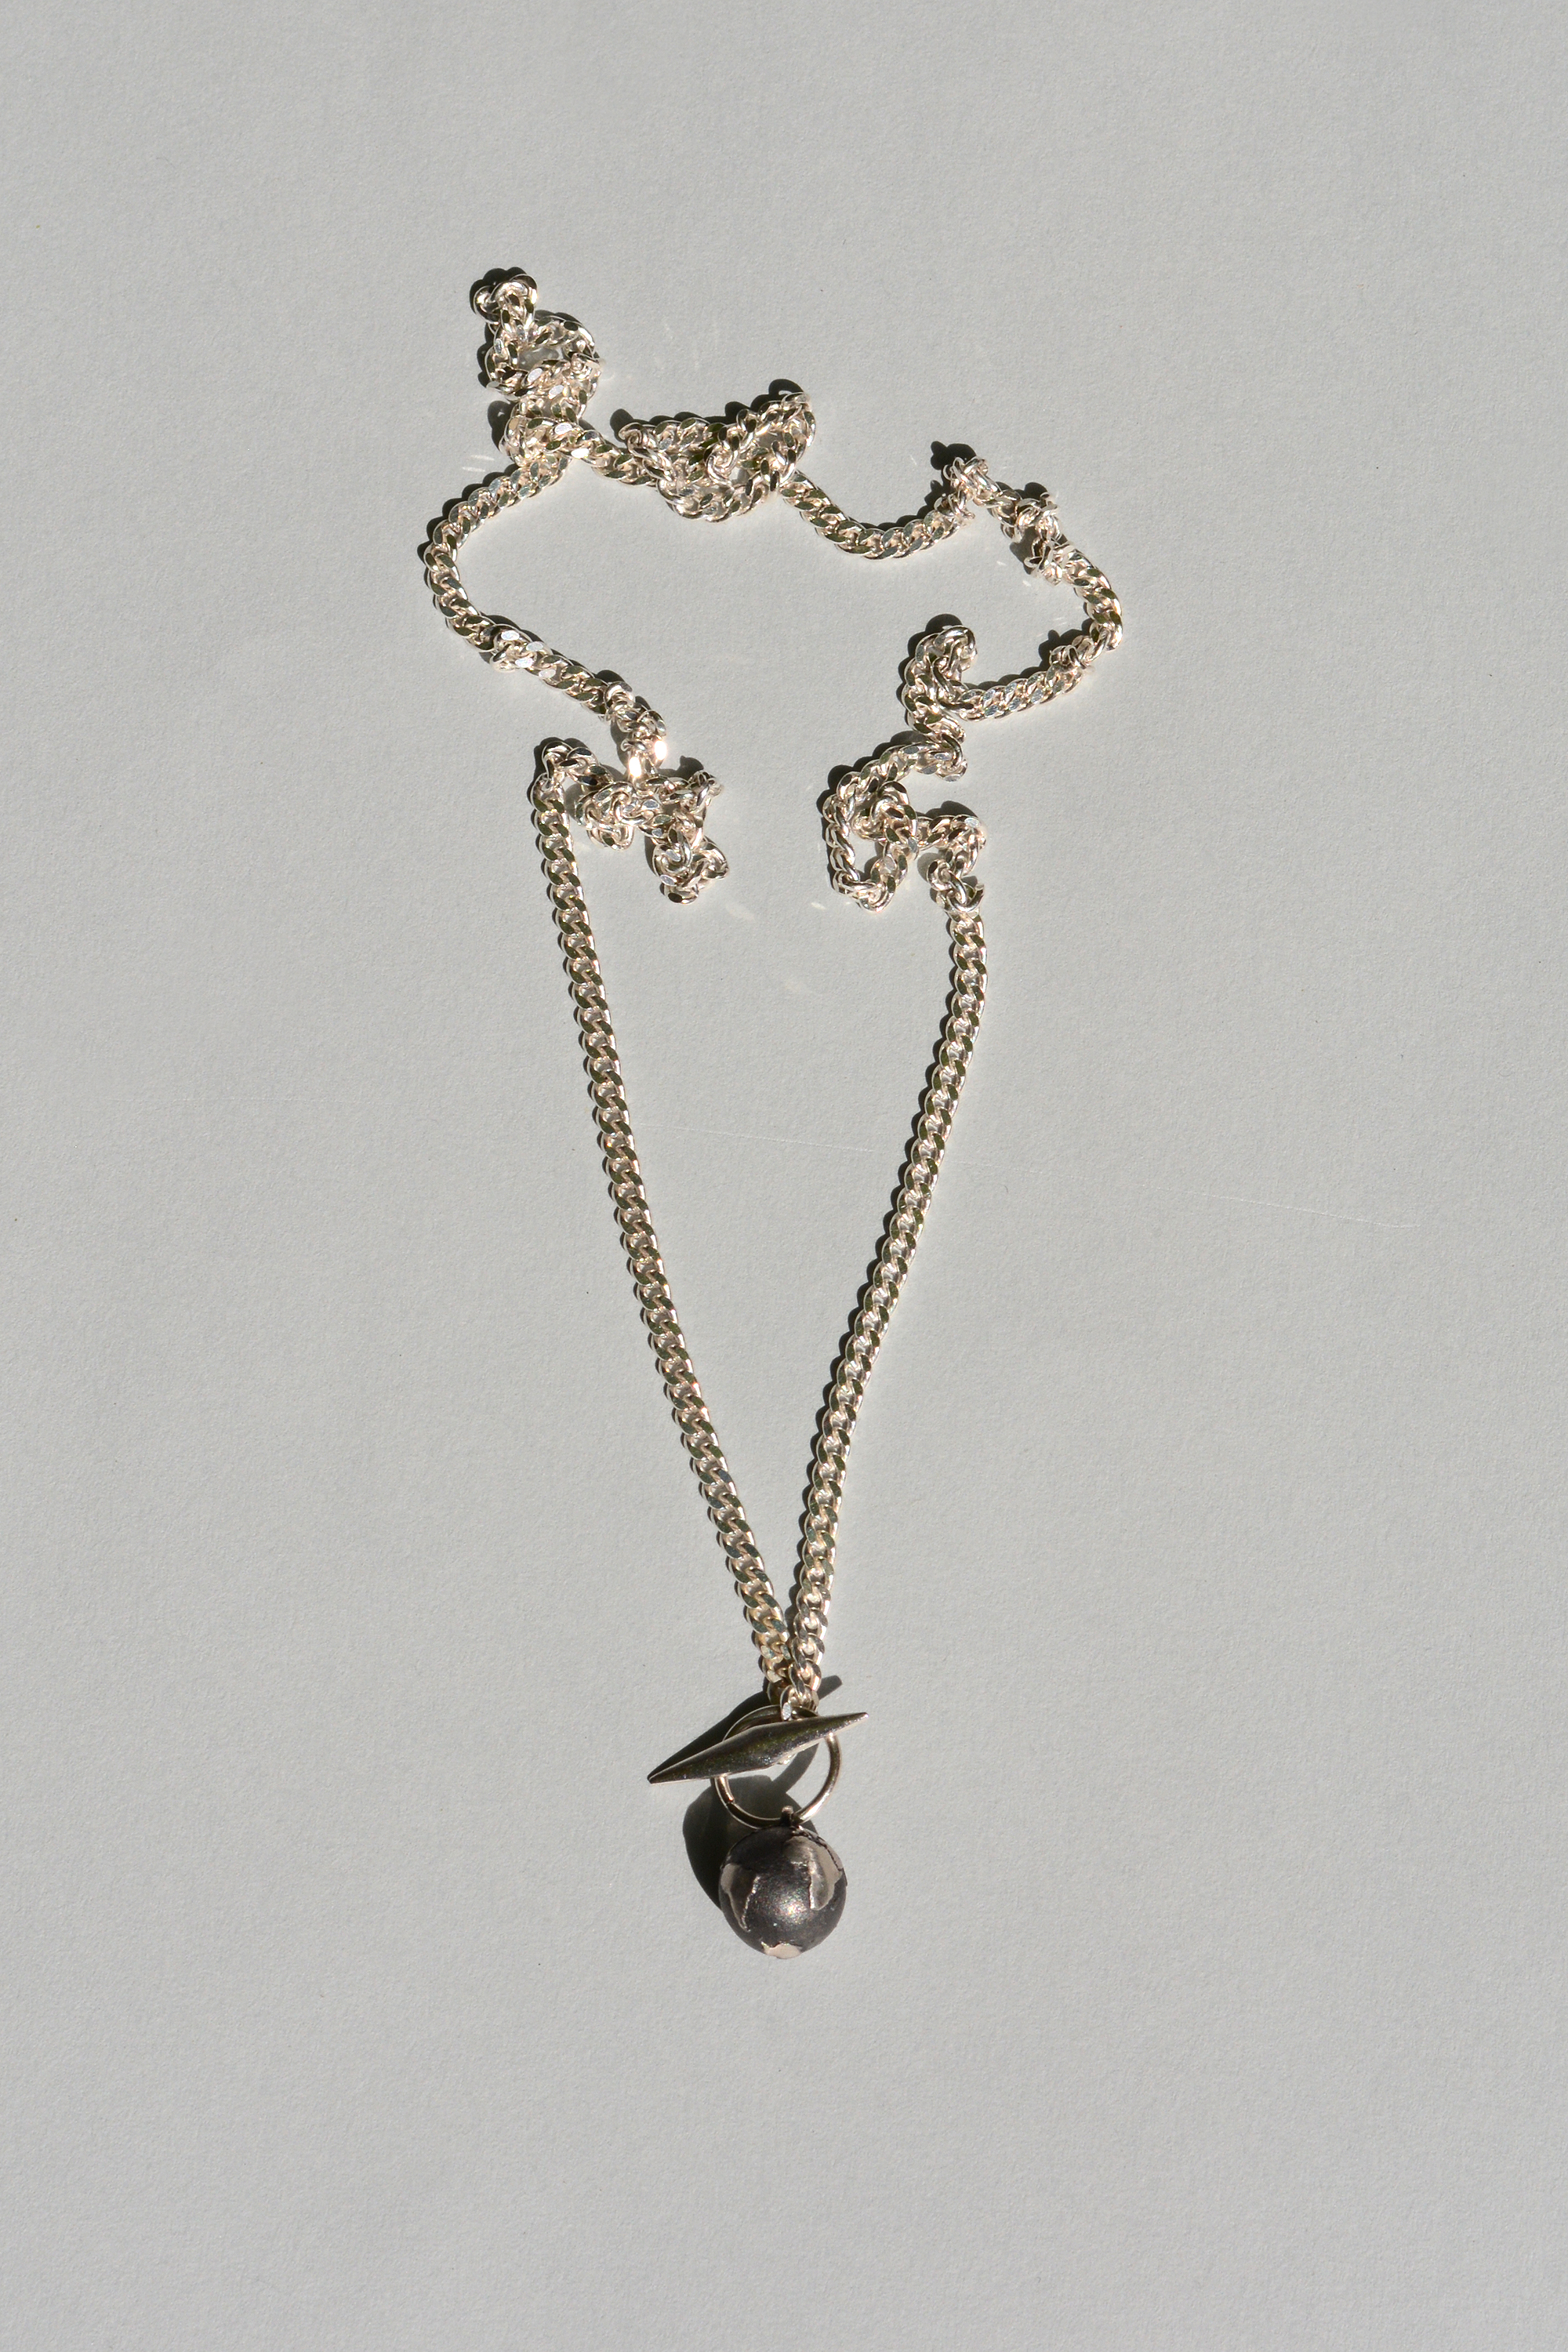 white real anchor stones necklace with gold an inch key and products lock cz layered pendant